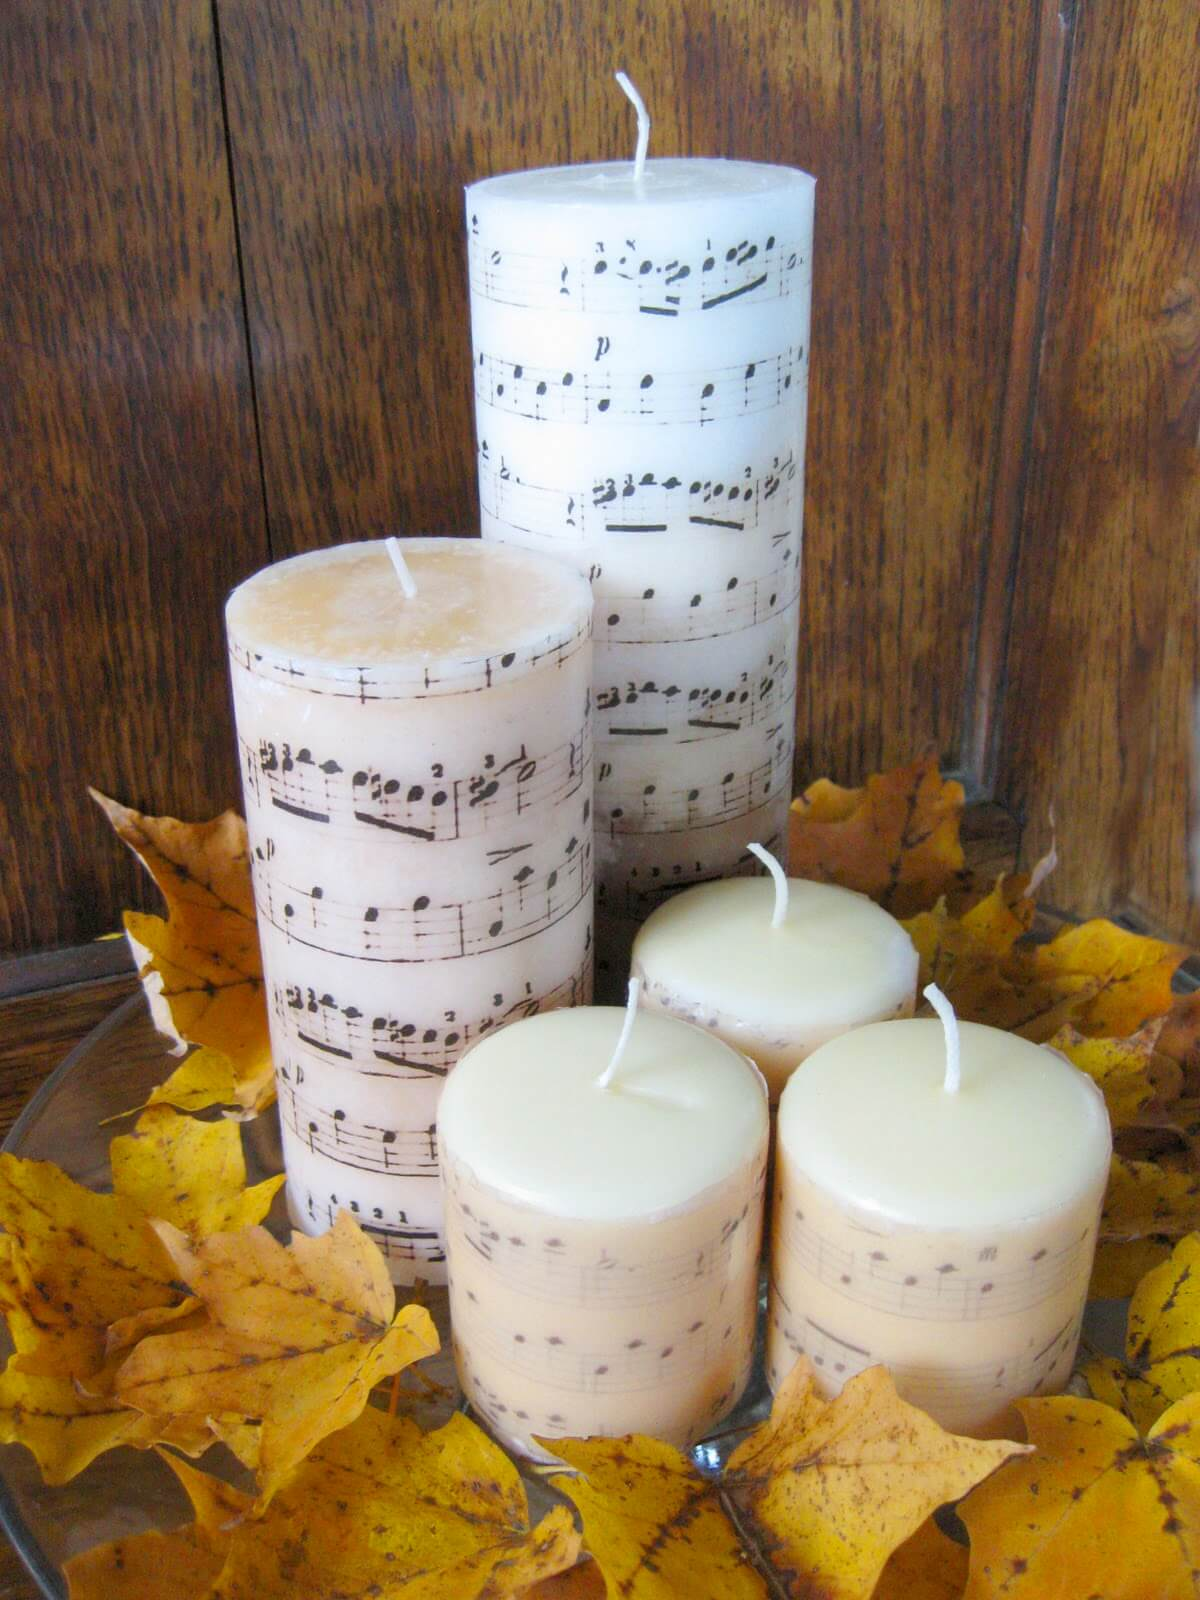 Musical Melodies Add Flair to Any Candle